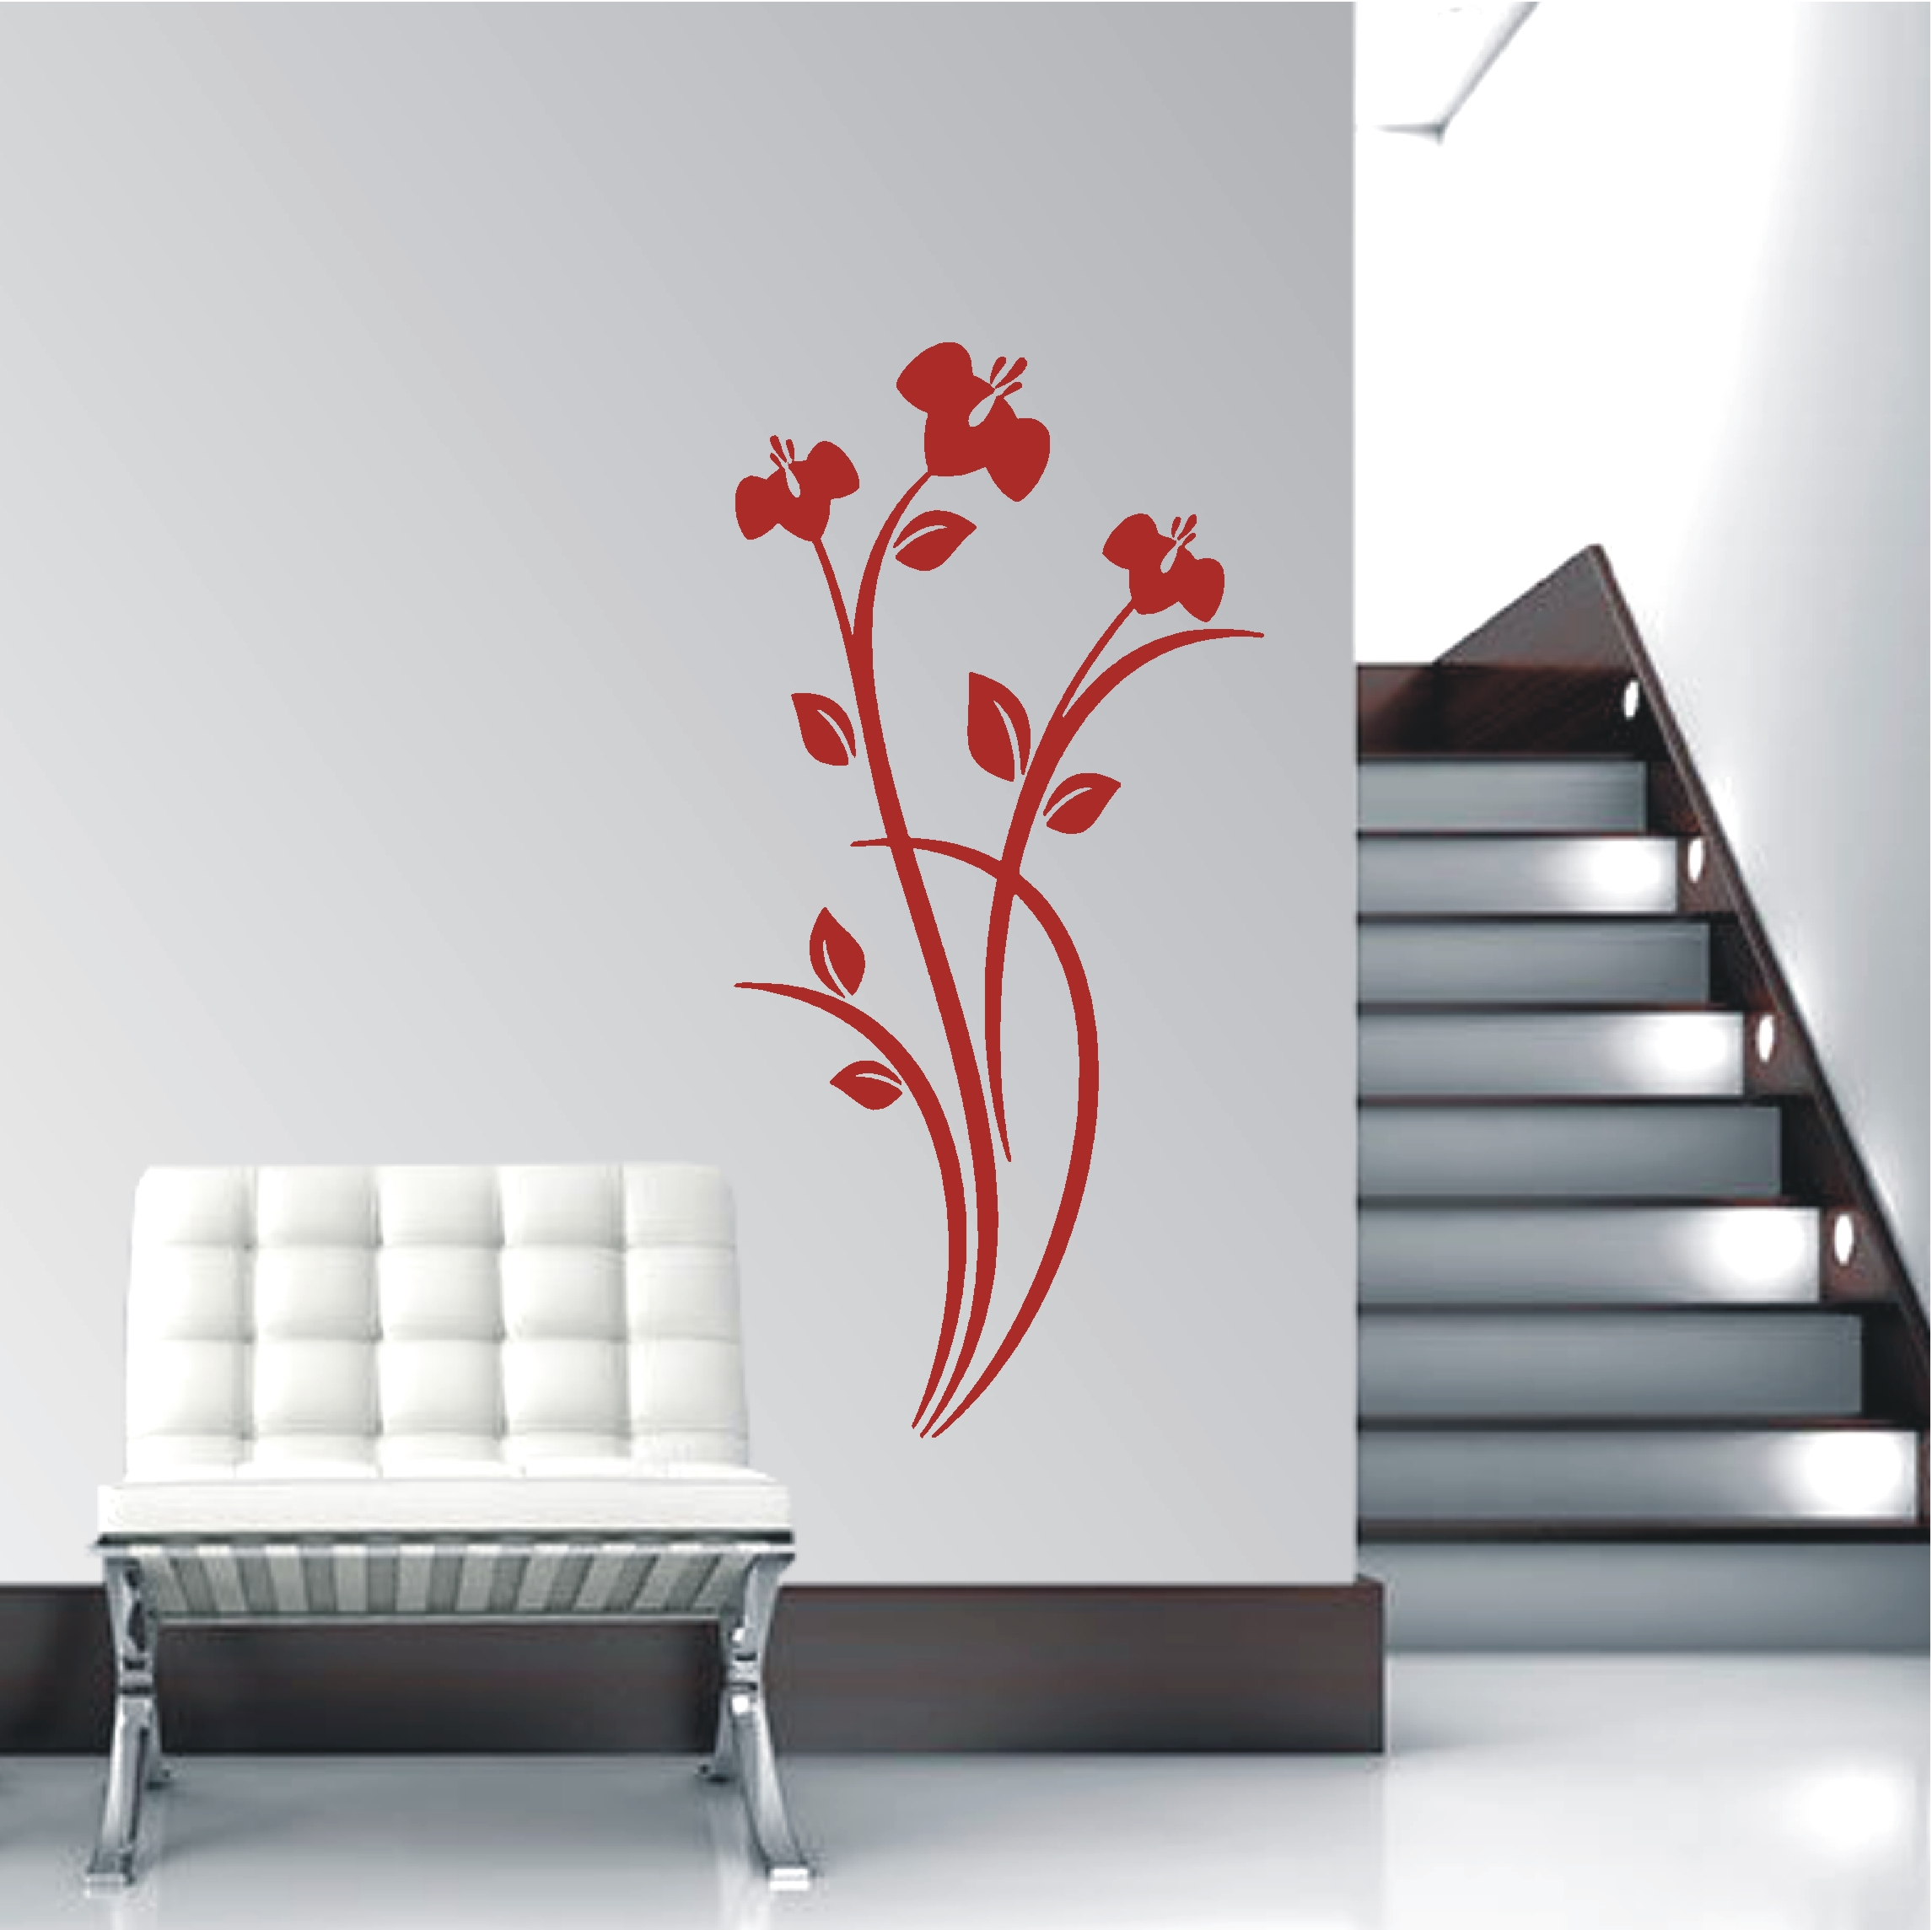 deko shop wandtattoo blumen ornament deko shop. Black Bedroom Furniture Sets. Home Design Ideas